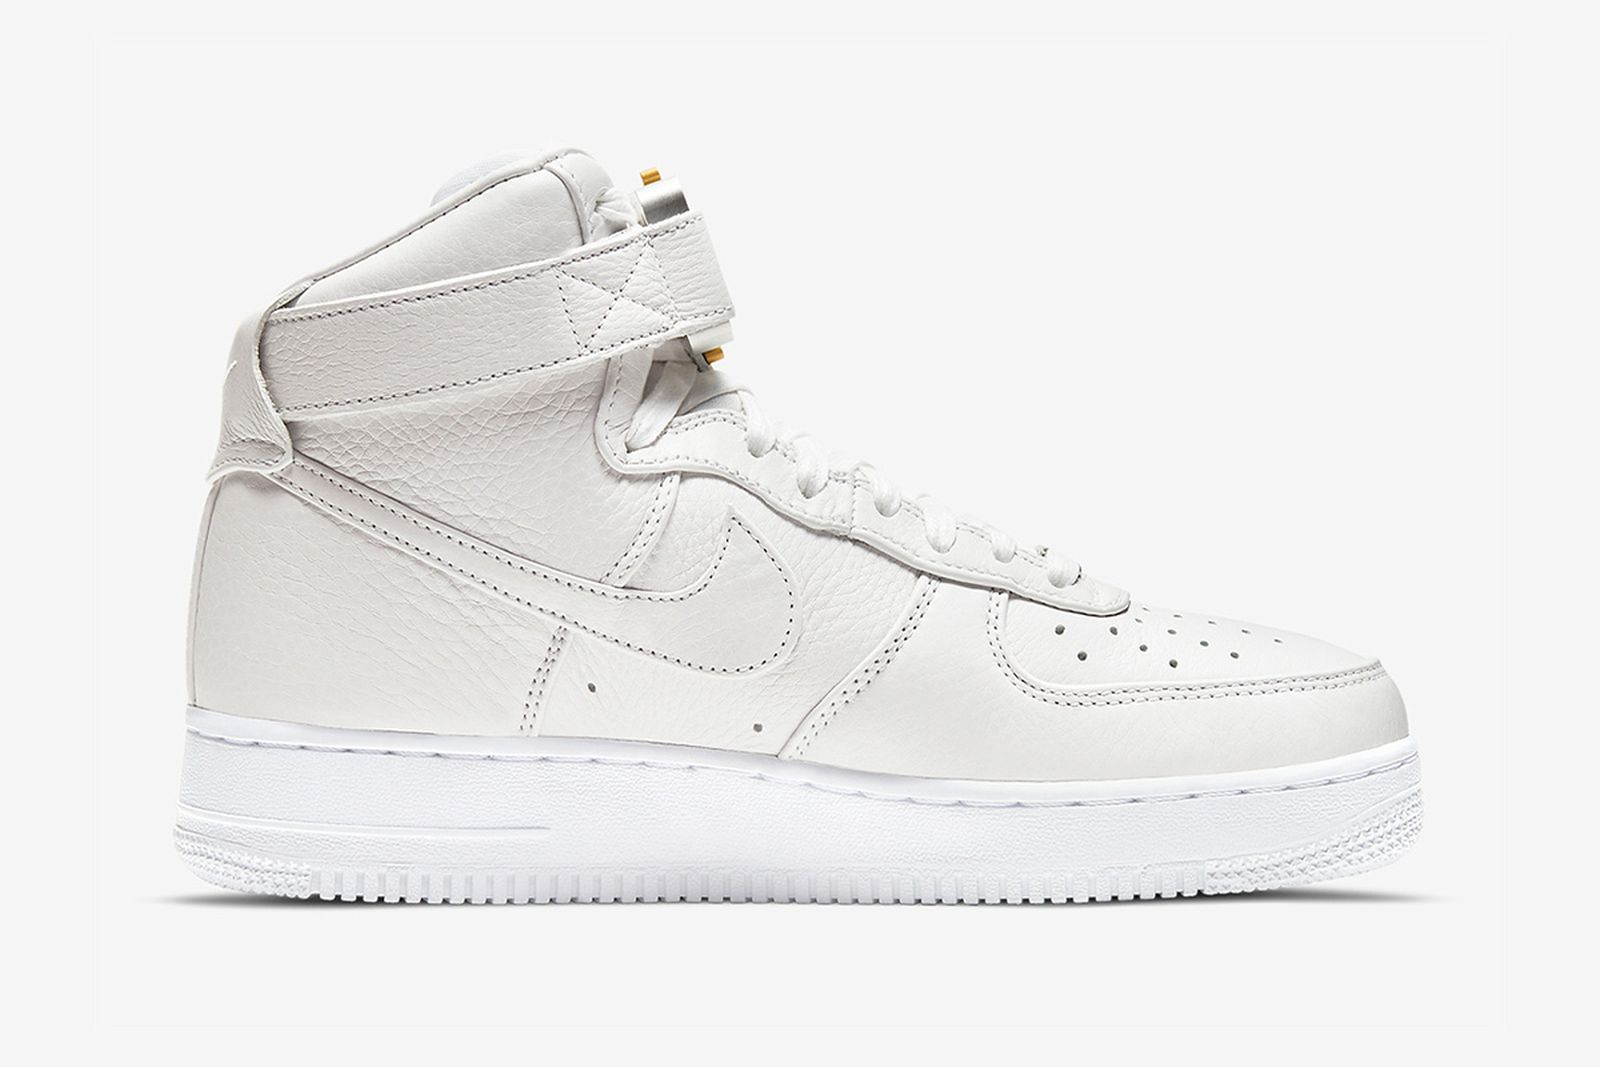 1017-alyx-9sm-nike-air-force-1-high-white-release-date-price-02